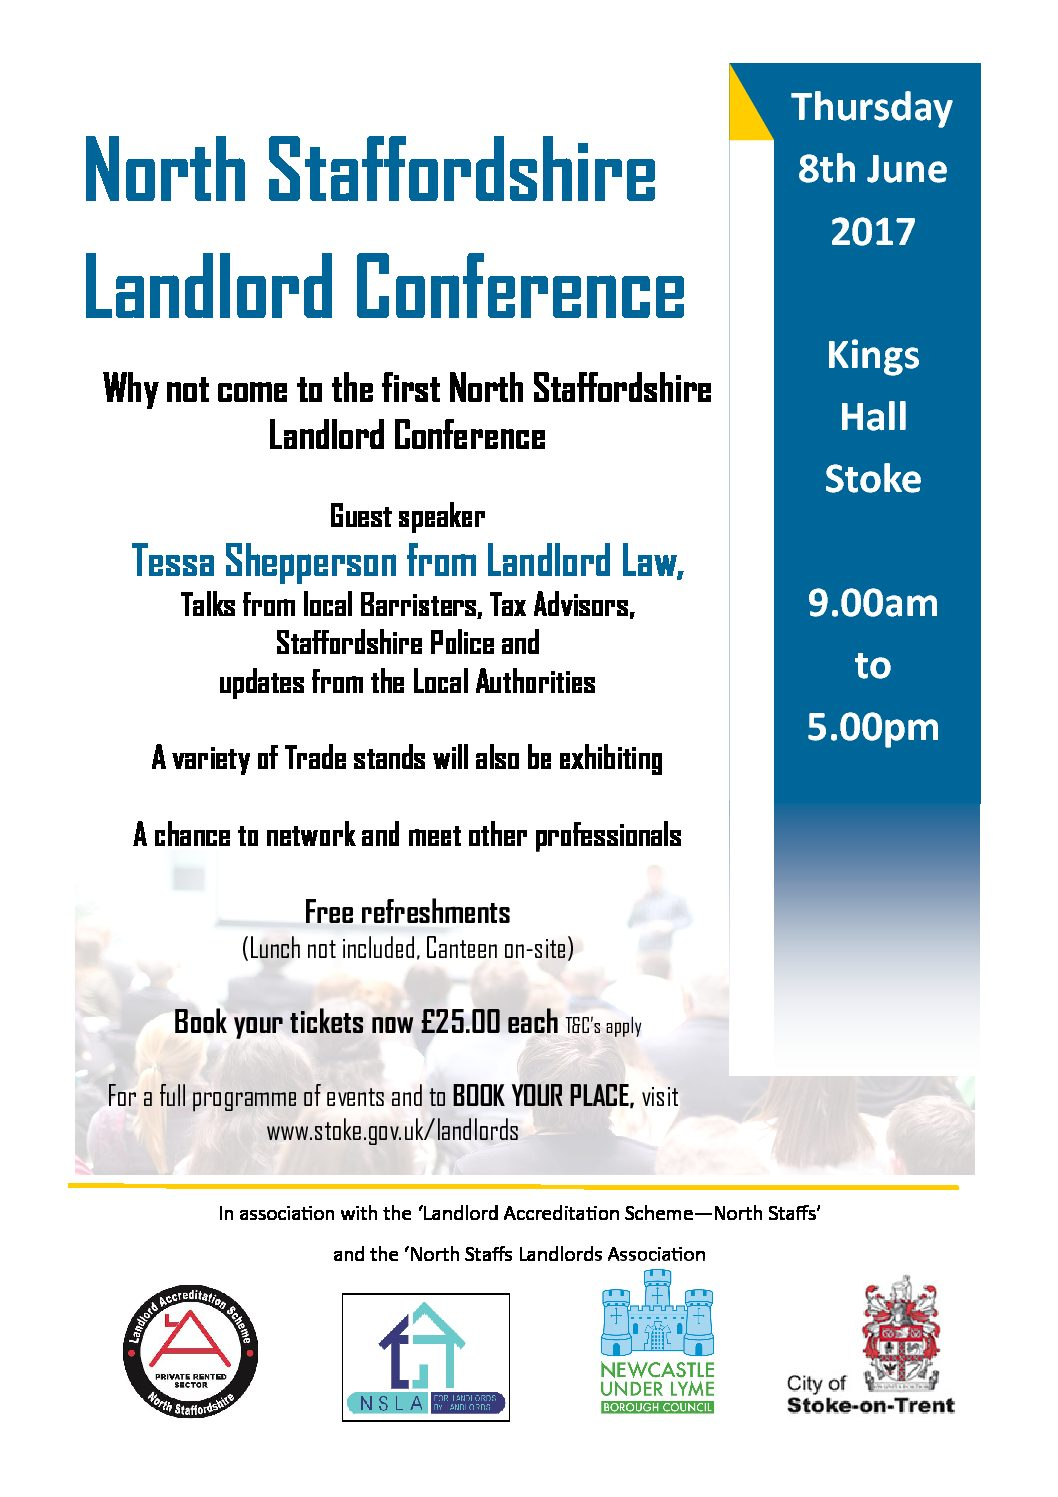 North Staffordshire Landlord Conference 2017